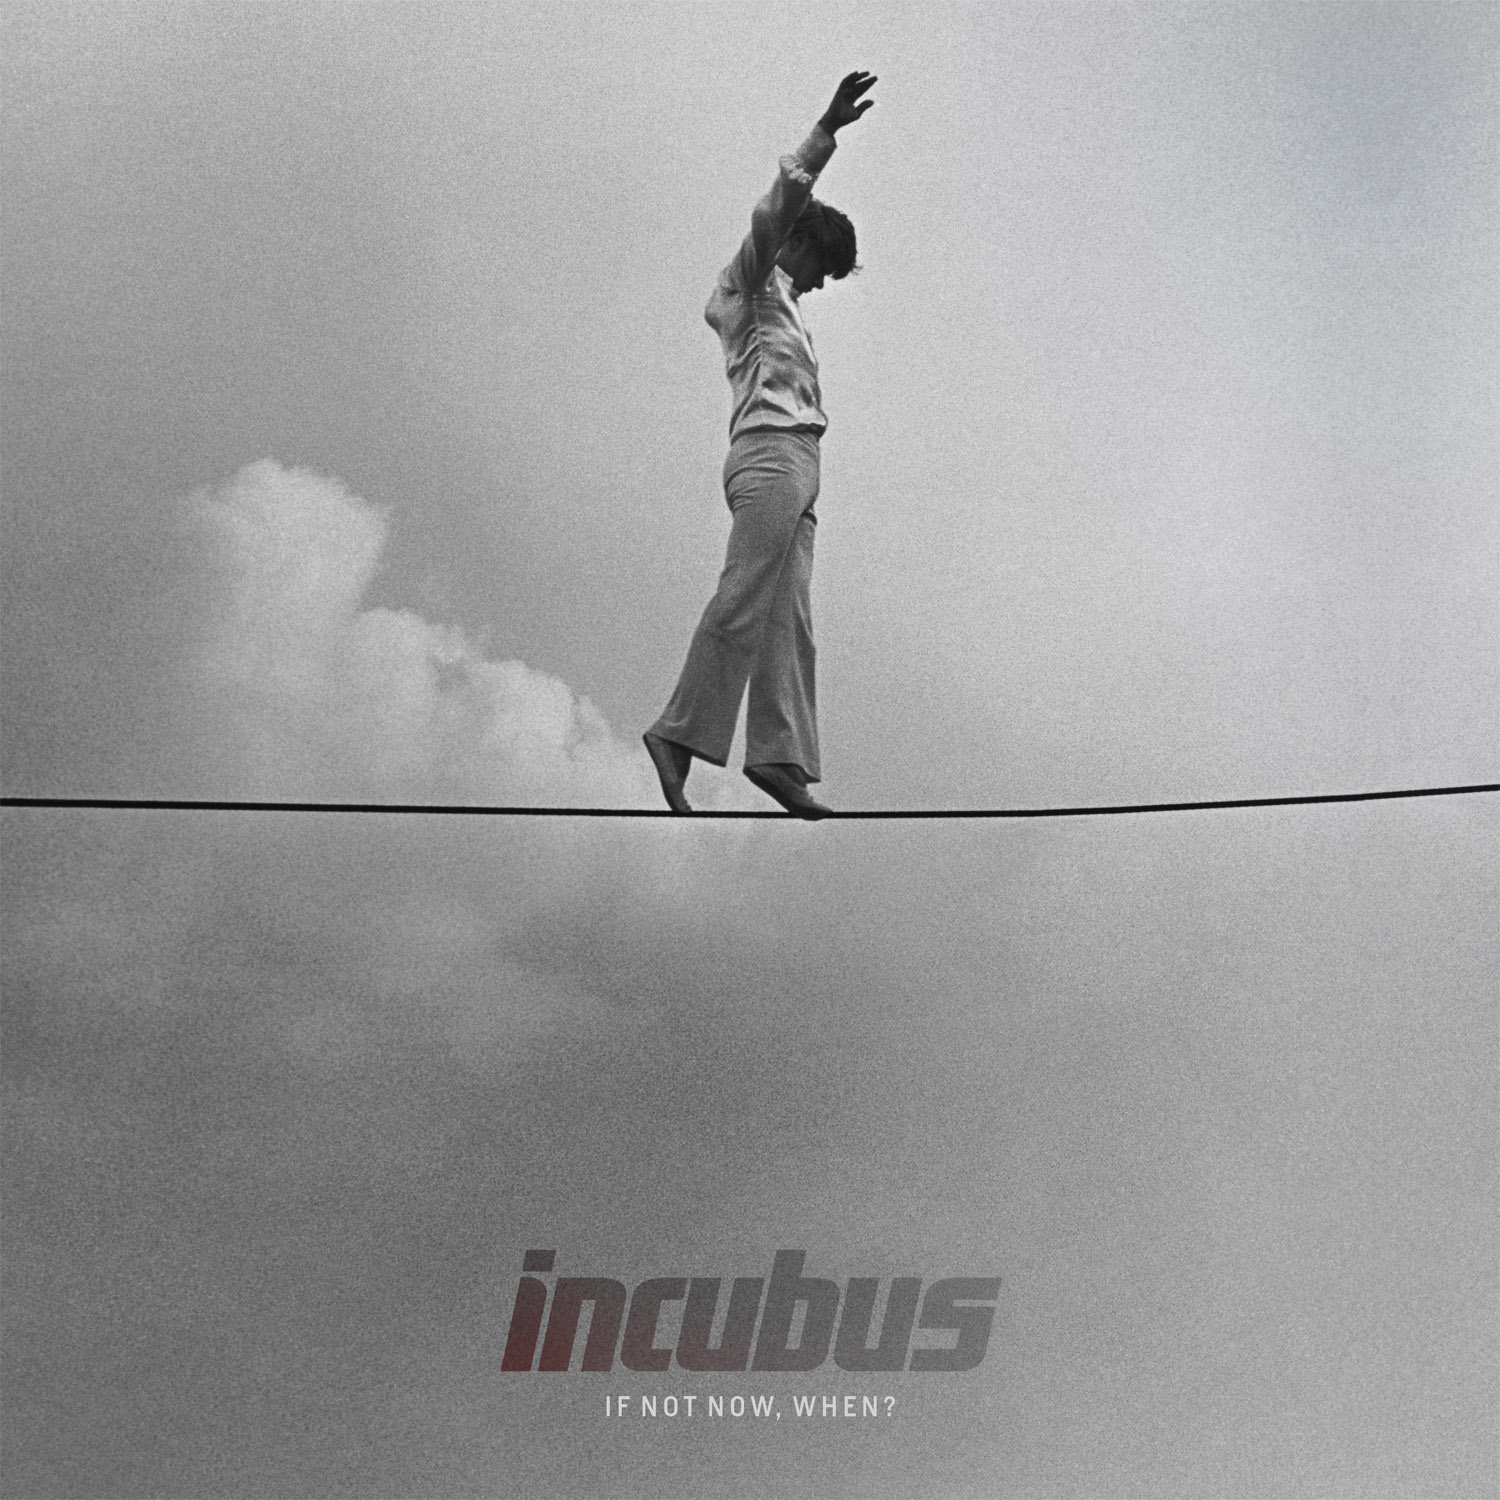 Incubus - If Not Now, When?